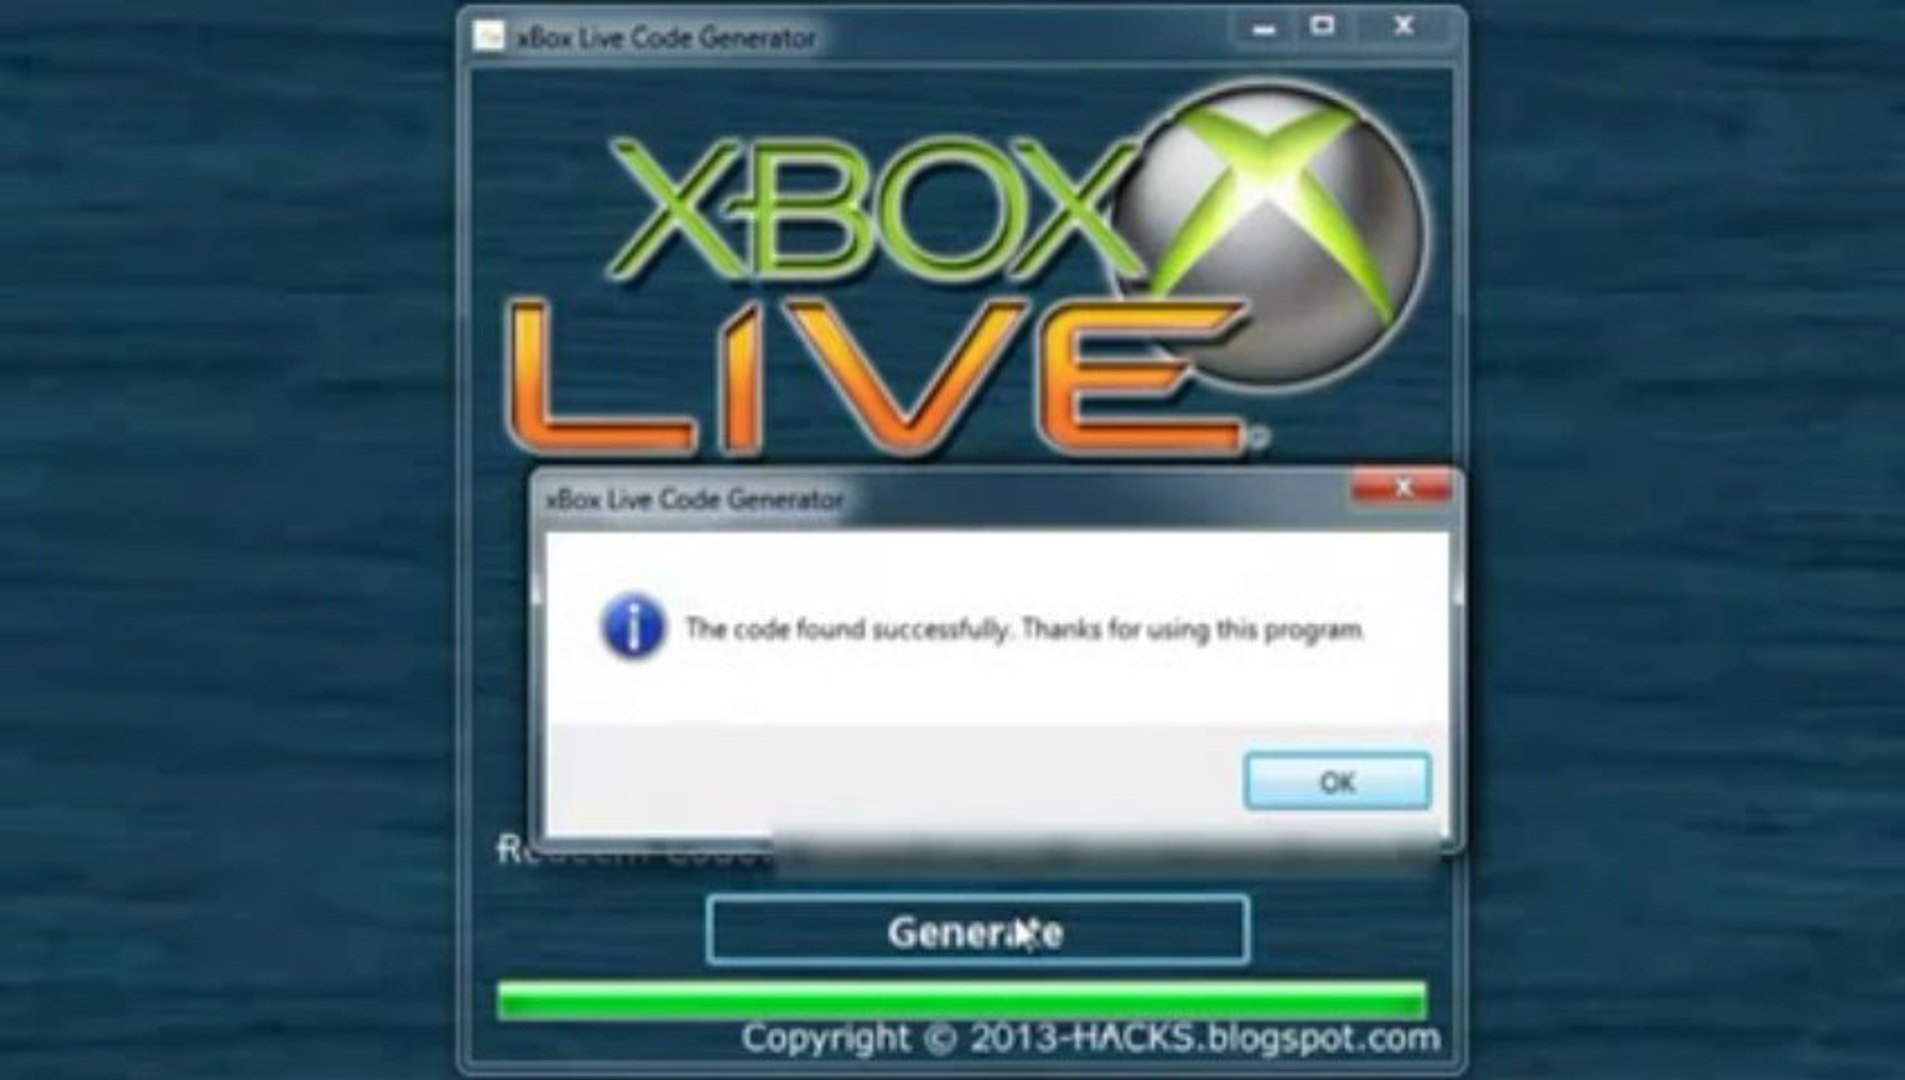 UPDATED] Download xBox Live Code Generator 2013 for free [TESTED and WORK]  xvid -